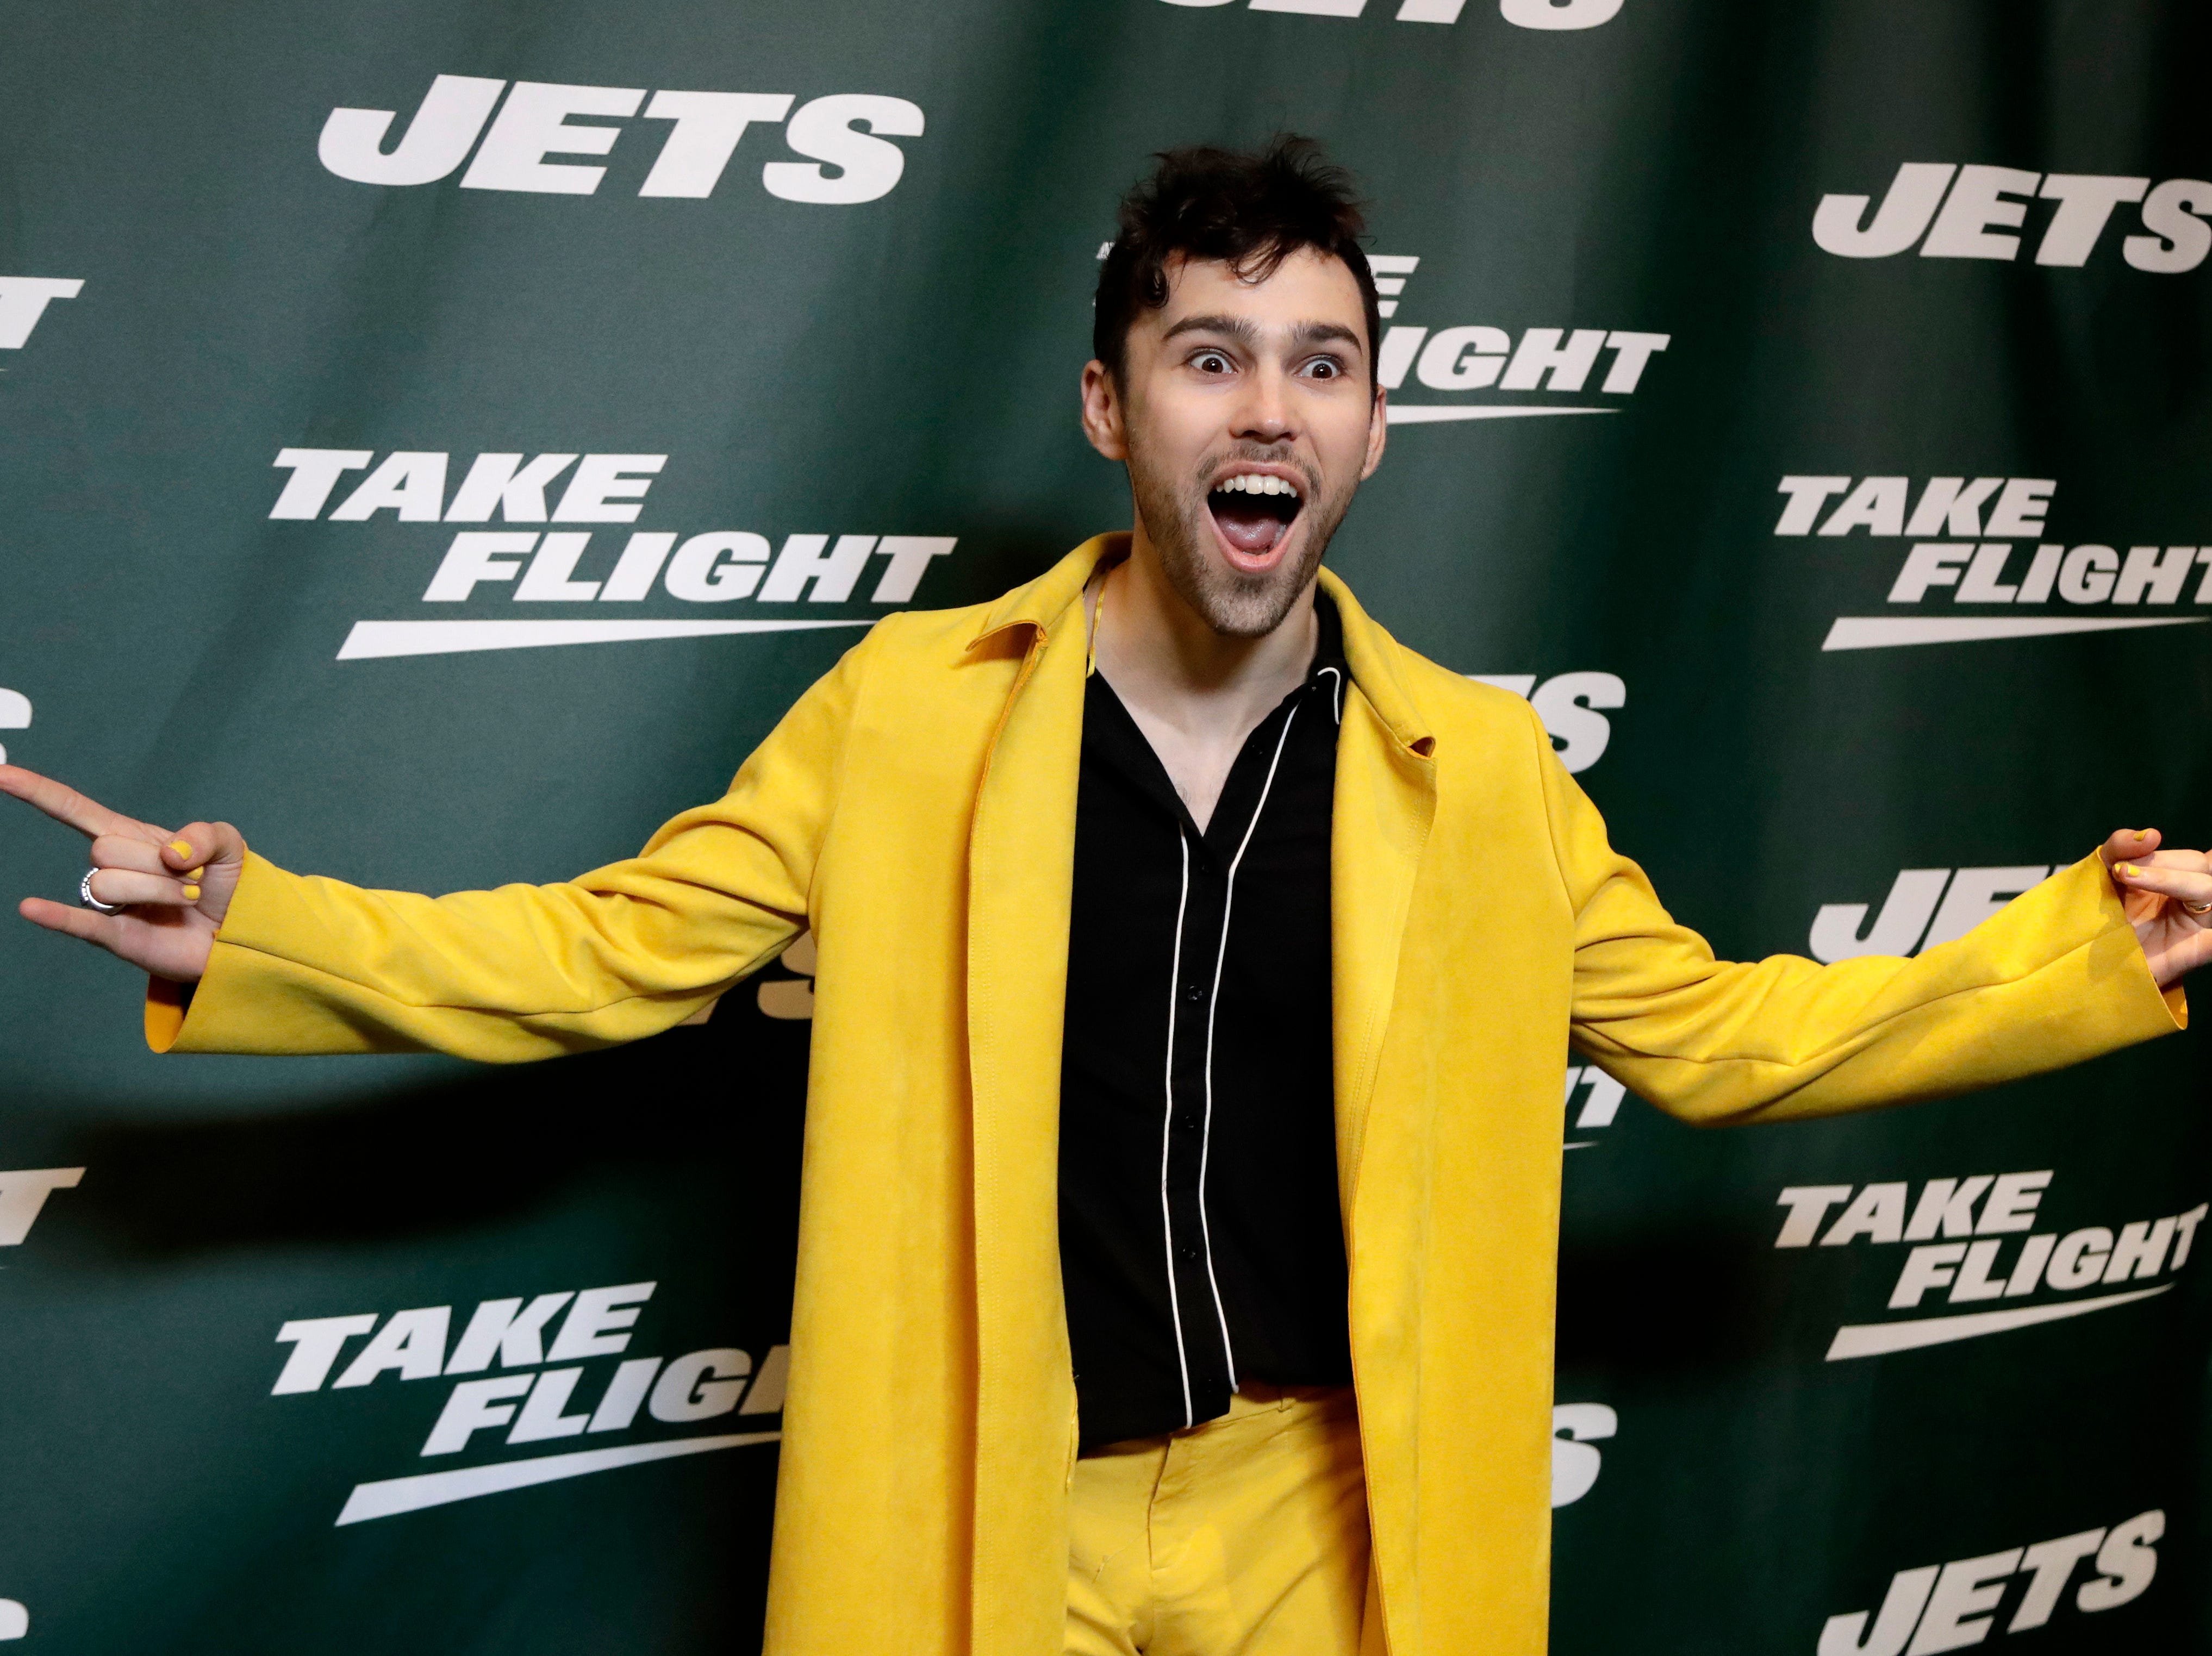 Singer Max Schneider poses for photographers on the green carpet ahead of an event unveiling the New York Jets new NFL football uniforms, Thursday, April 4, 2019, in New York. (AP Photo/Julio Cortez)